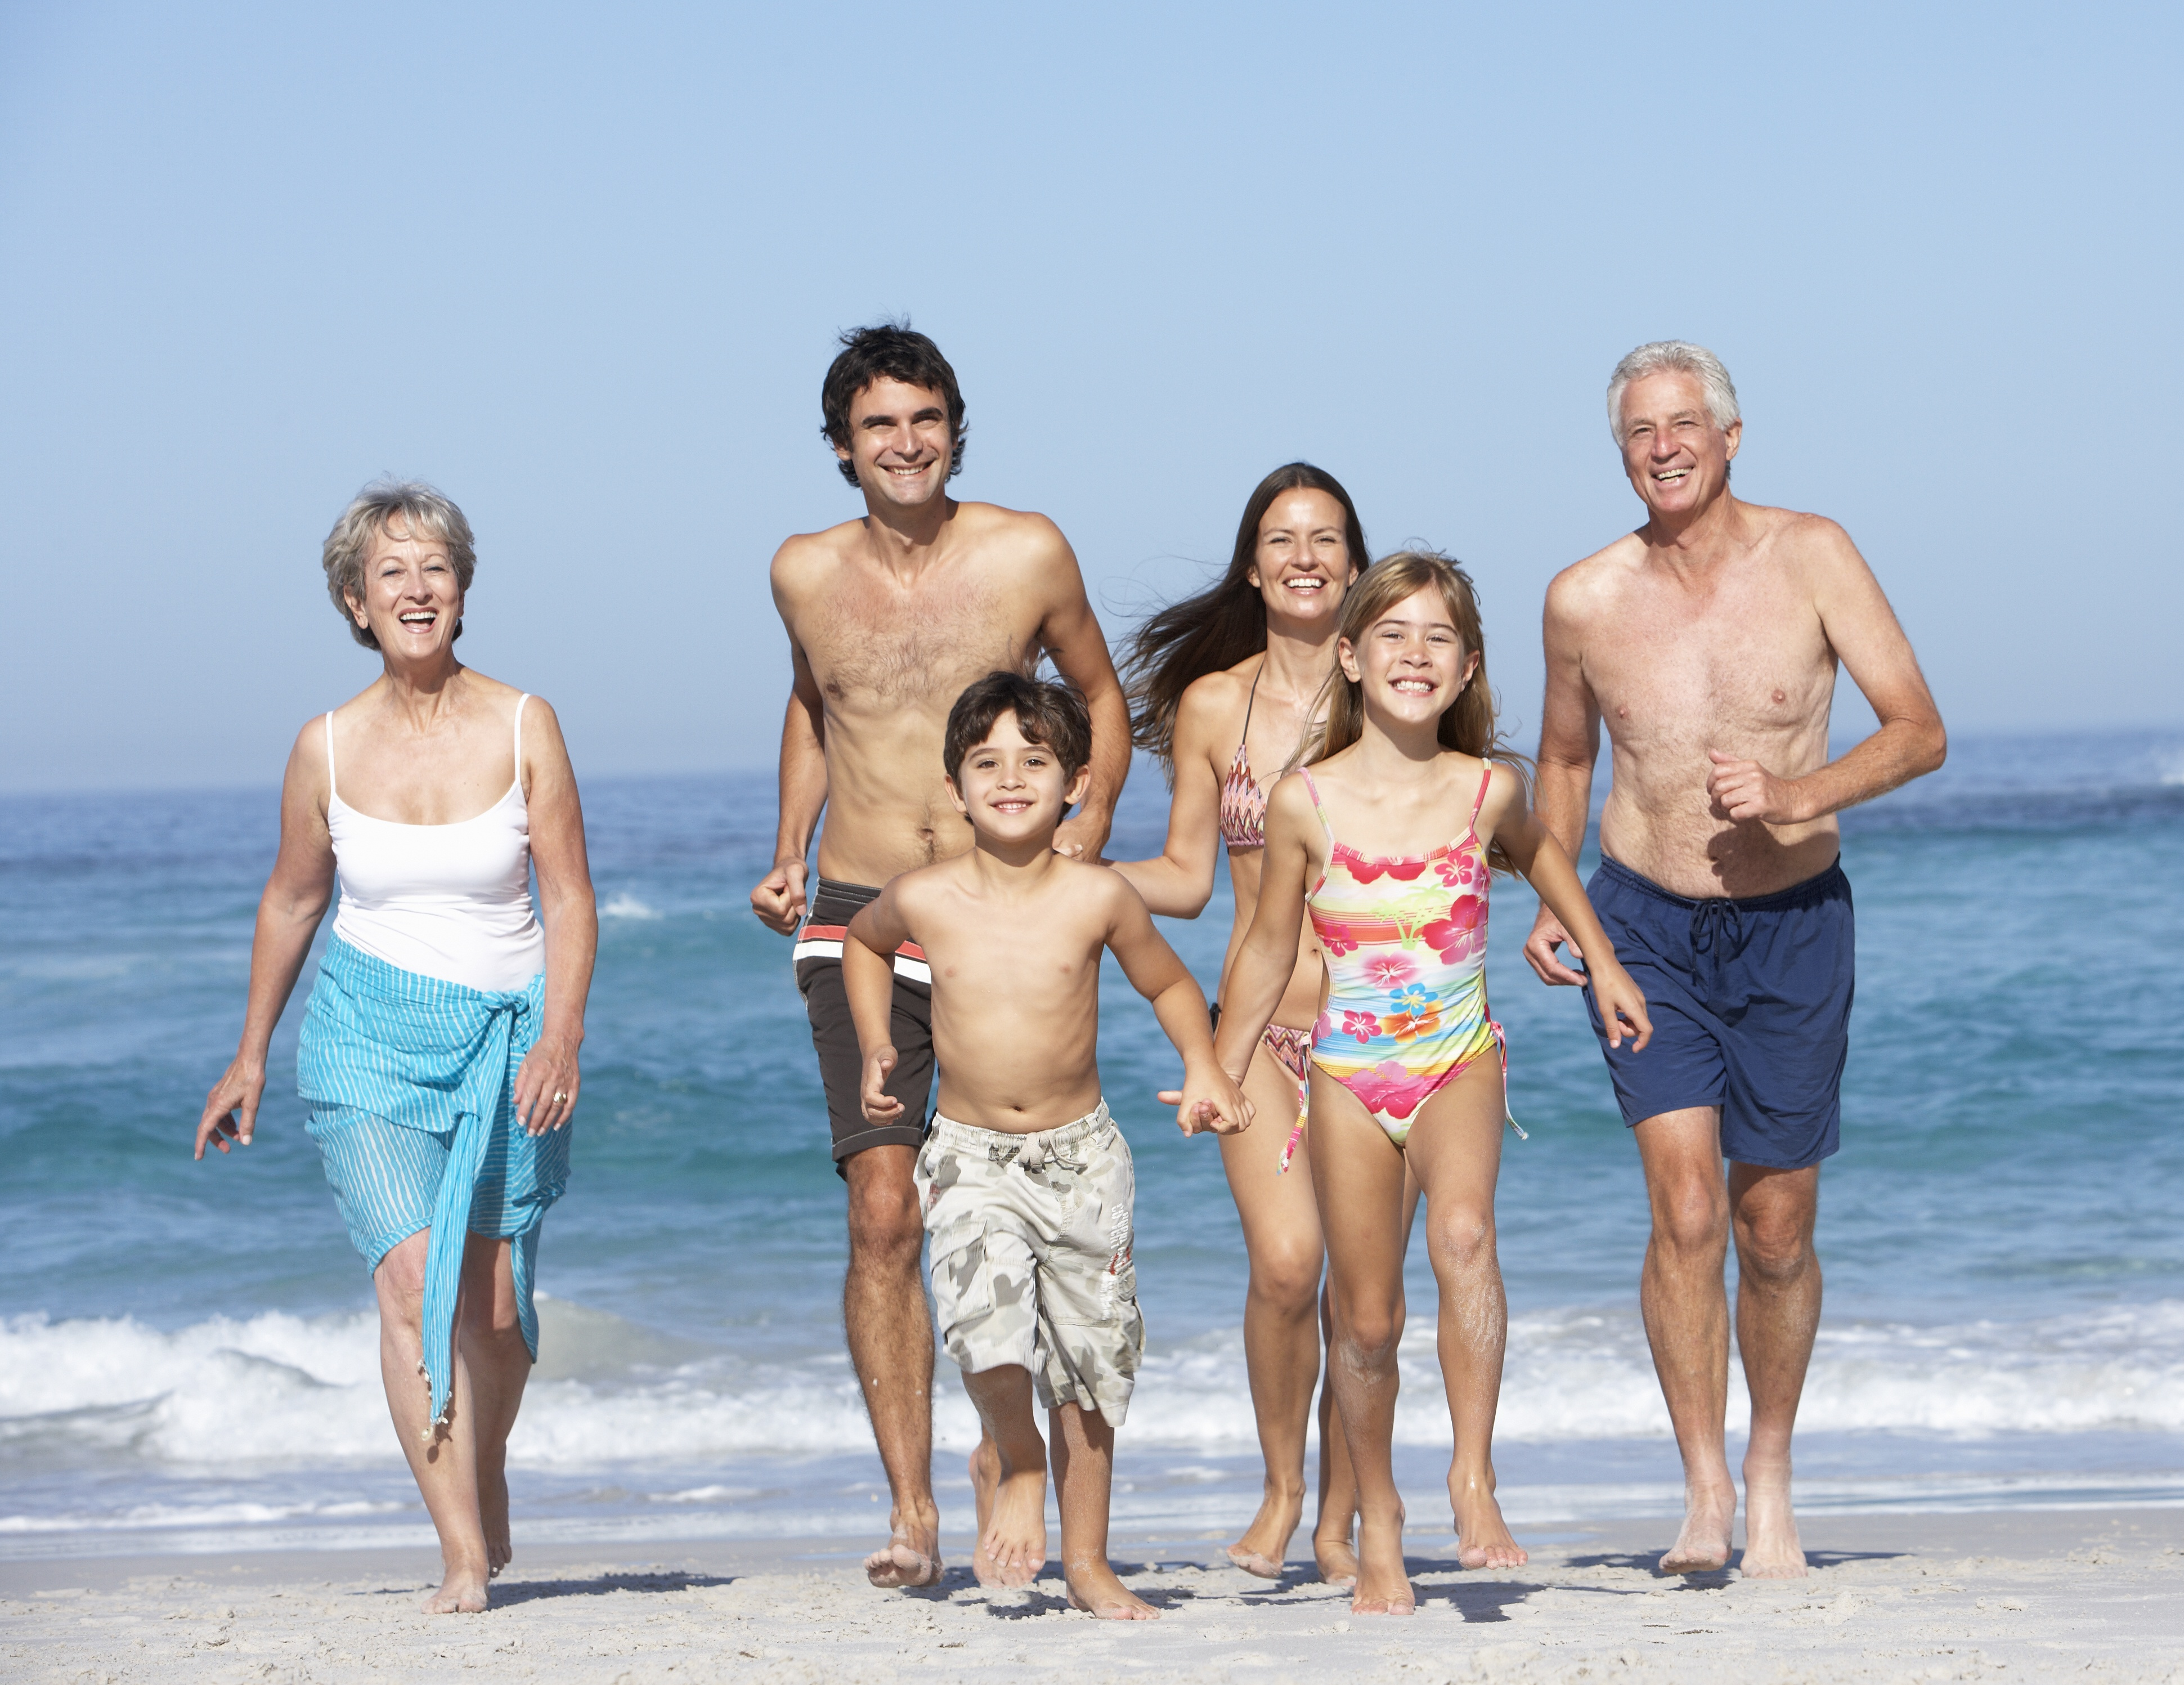 Multi Generation Family Vacation At The Beach Photos Yfgt